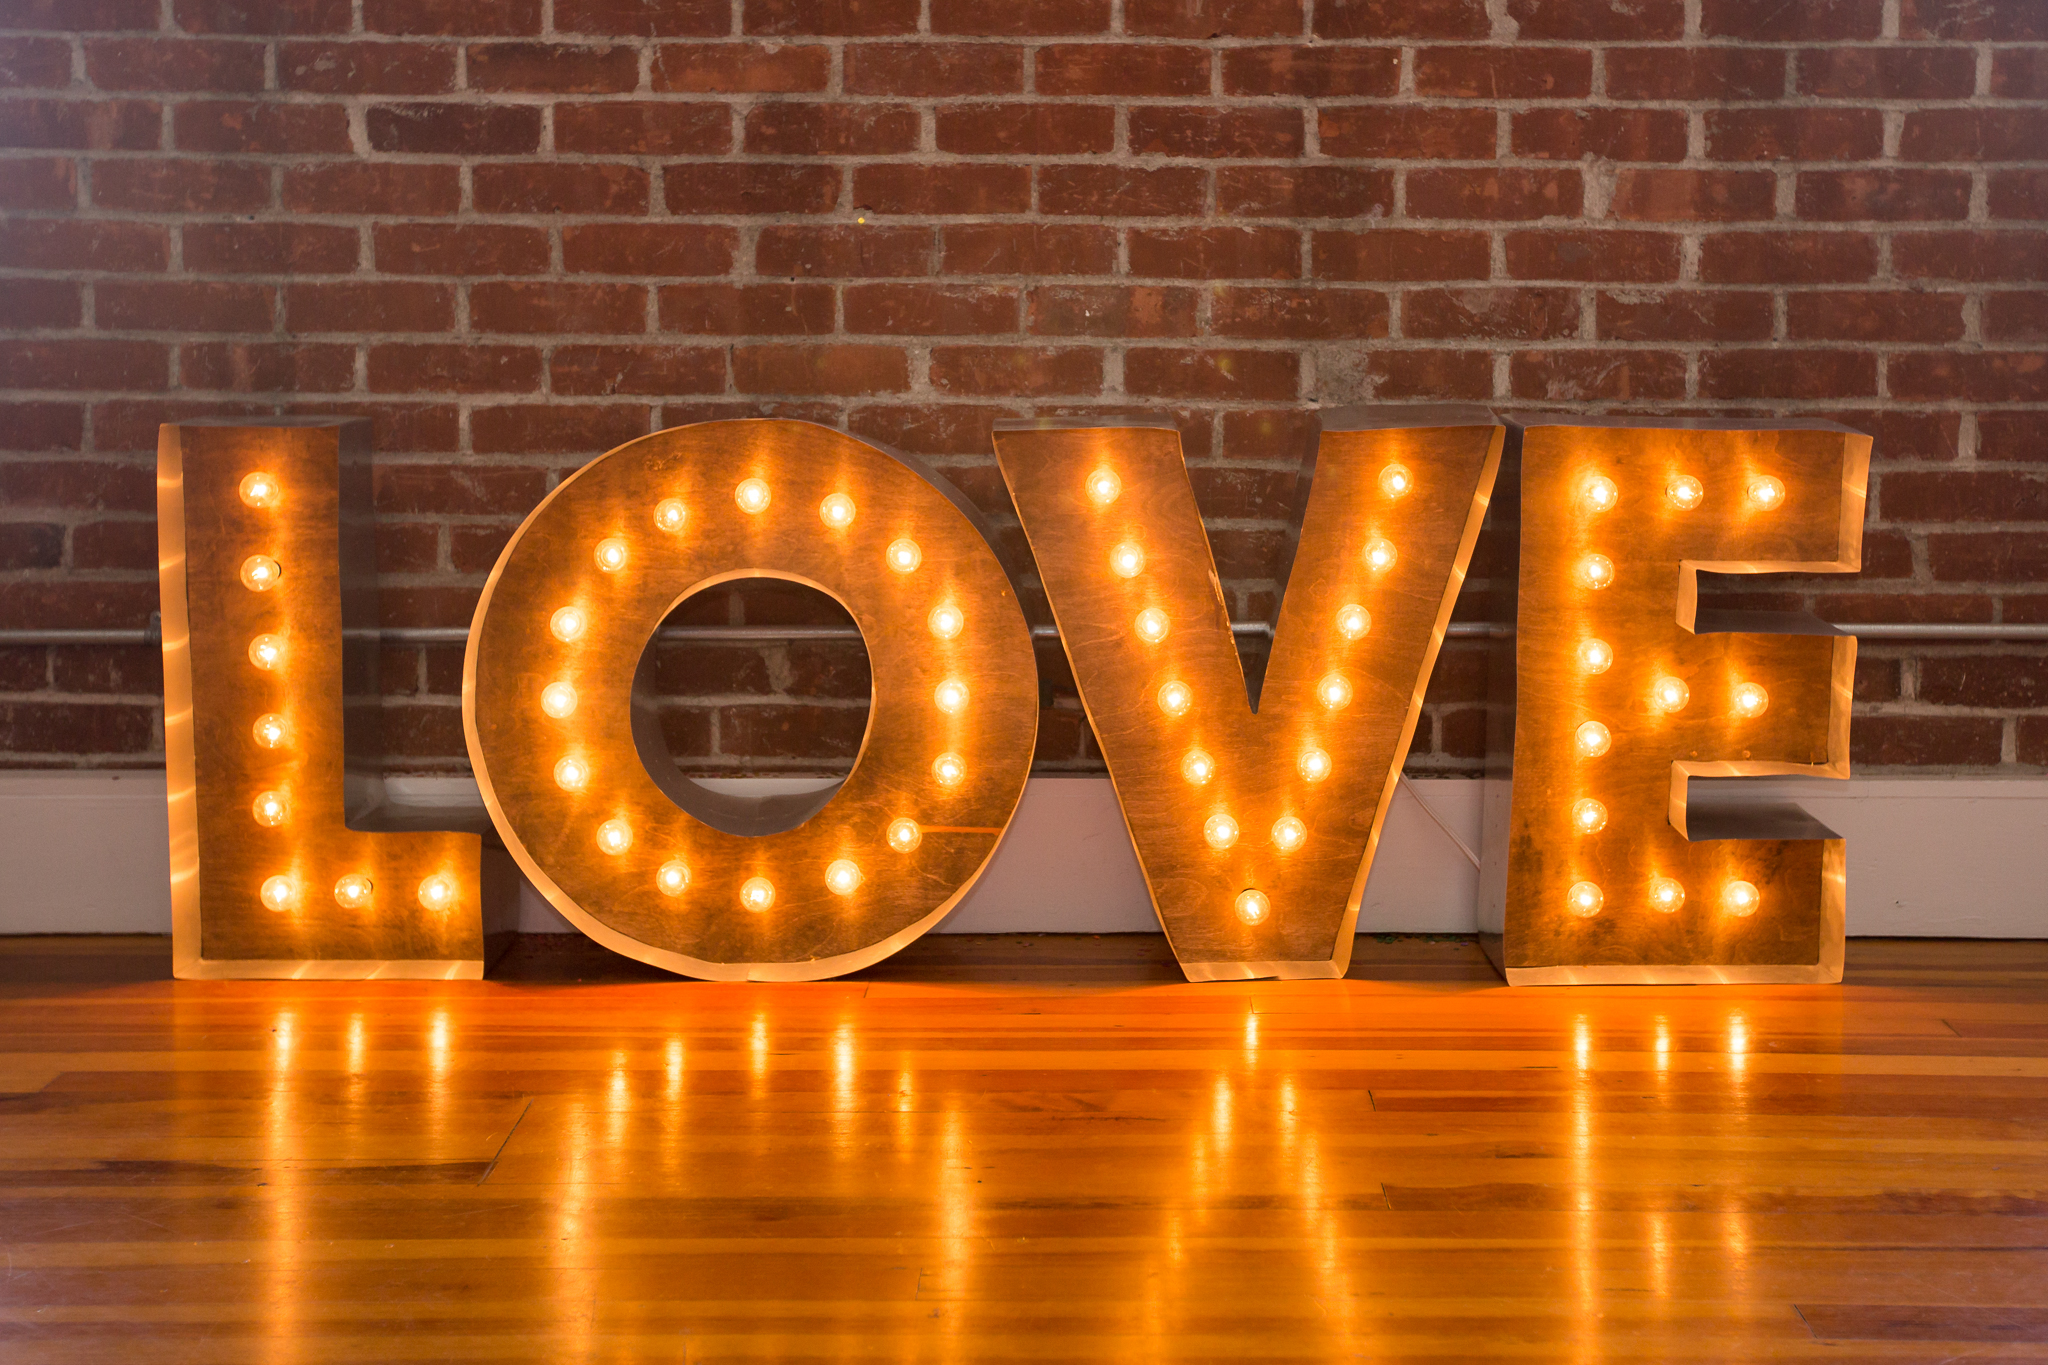 love marquee letters | shaina lee photography connecticut + destination wedding photographer | wedding decor wedding theme | romantic industrial wedding